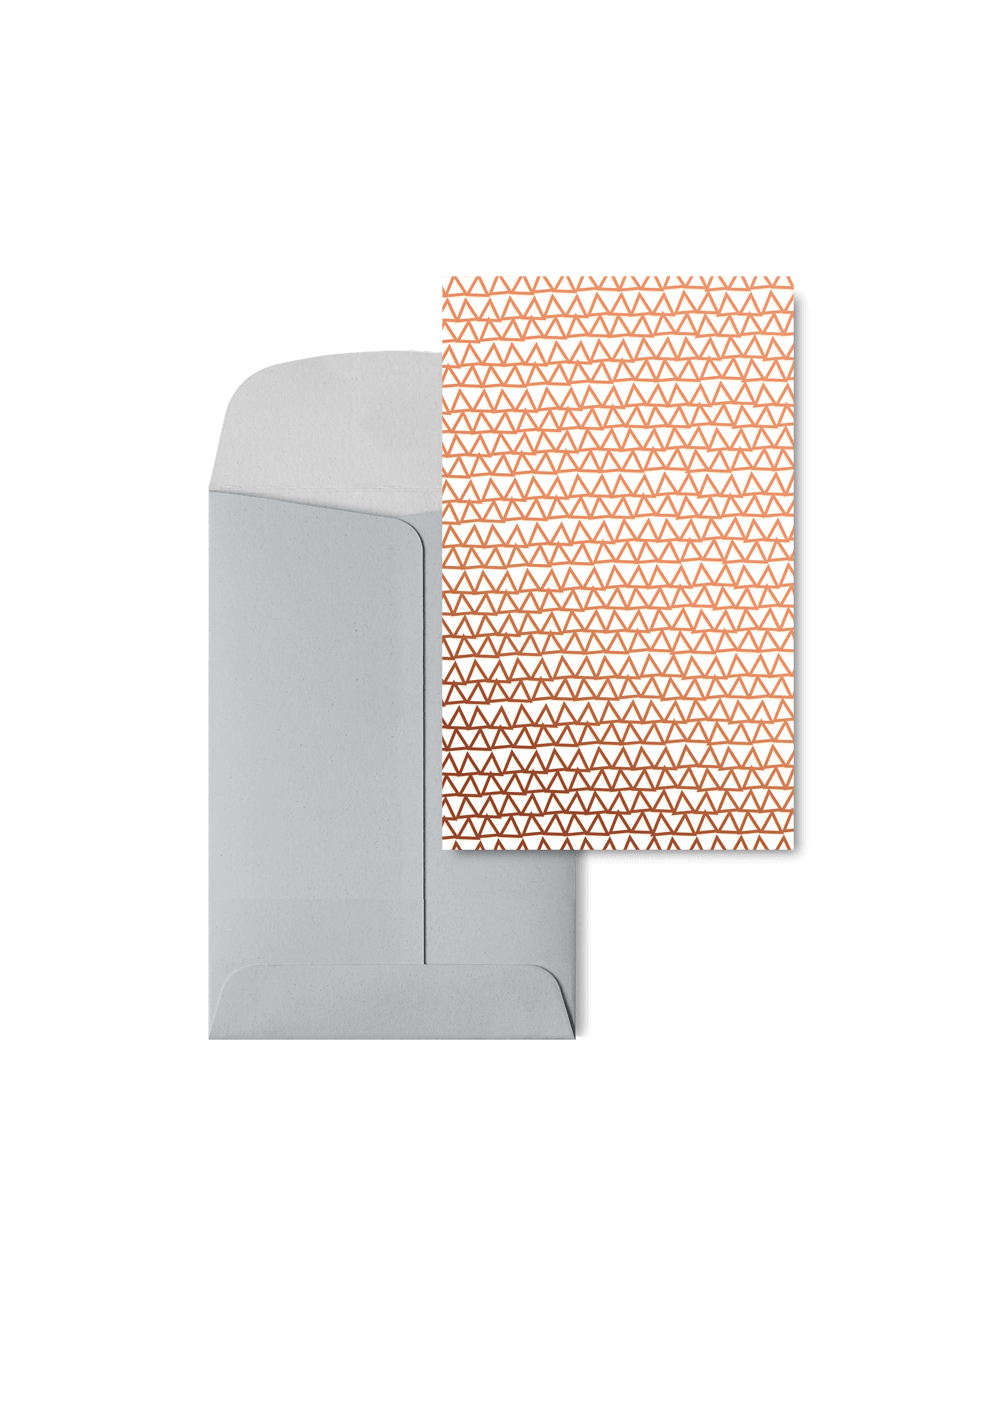 Shaking Through Rose Gold, 6 Karten Set by Karten Design Fabrik. Supplier of designer Greeting Cards, Gift Wrap, Christmas Cards & Invitations to leading design stores including Connox, Modulor, Magazin & Manufactum.